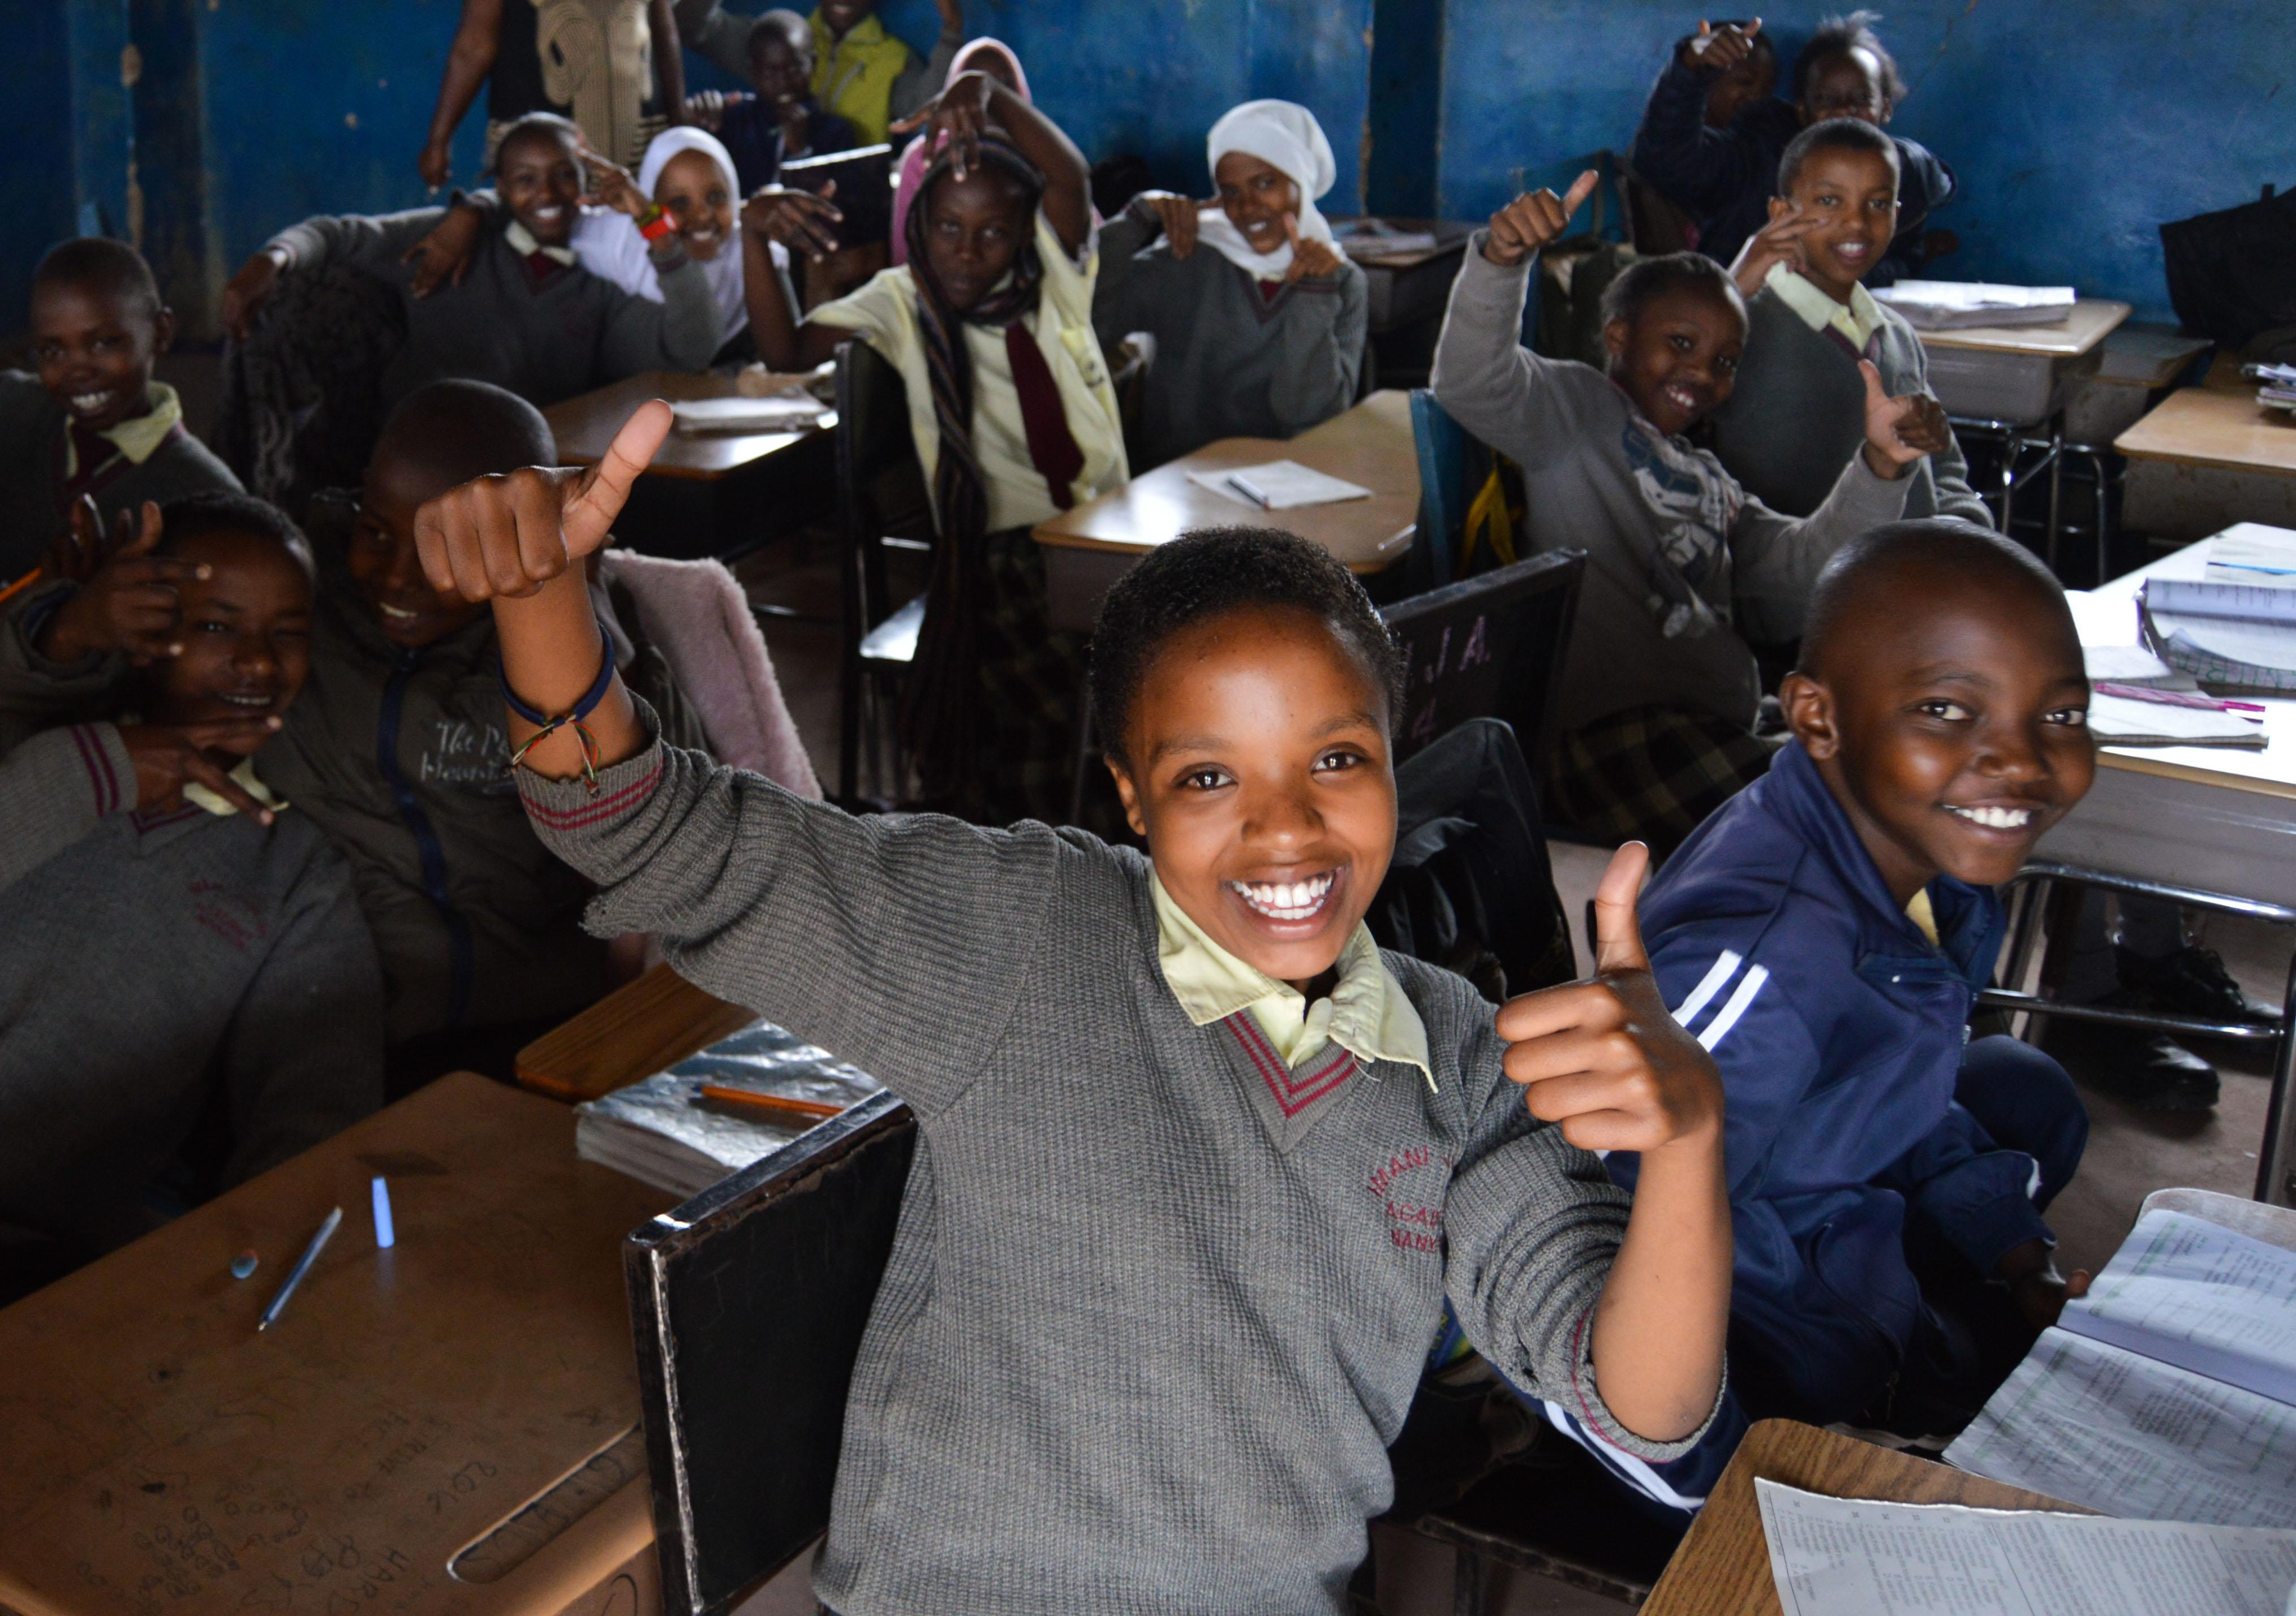 A student shares a thumbs up at one of our volunteer teaching placements in Kenya